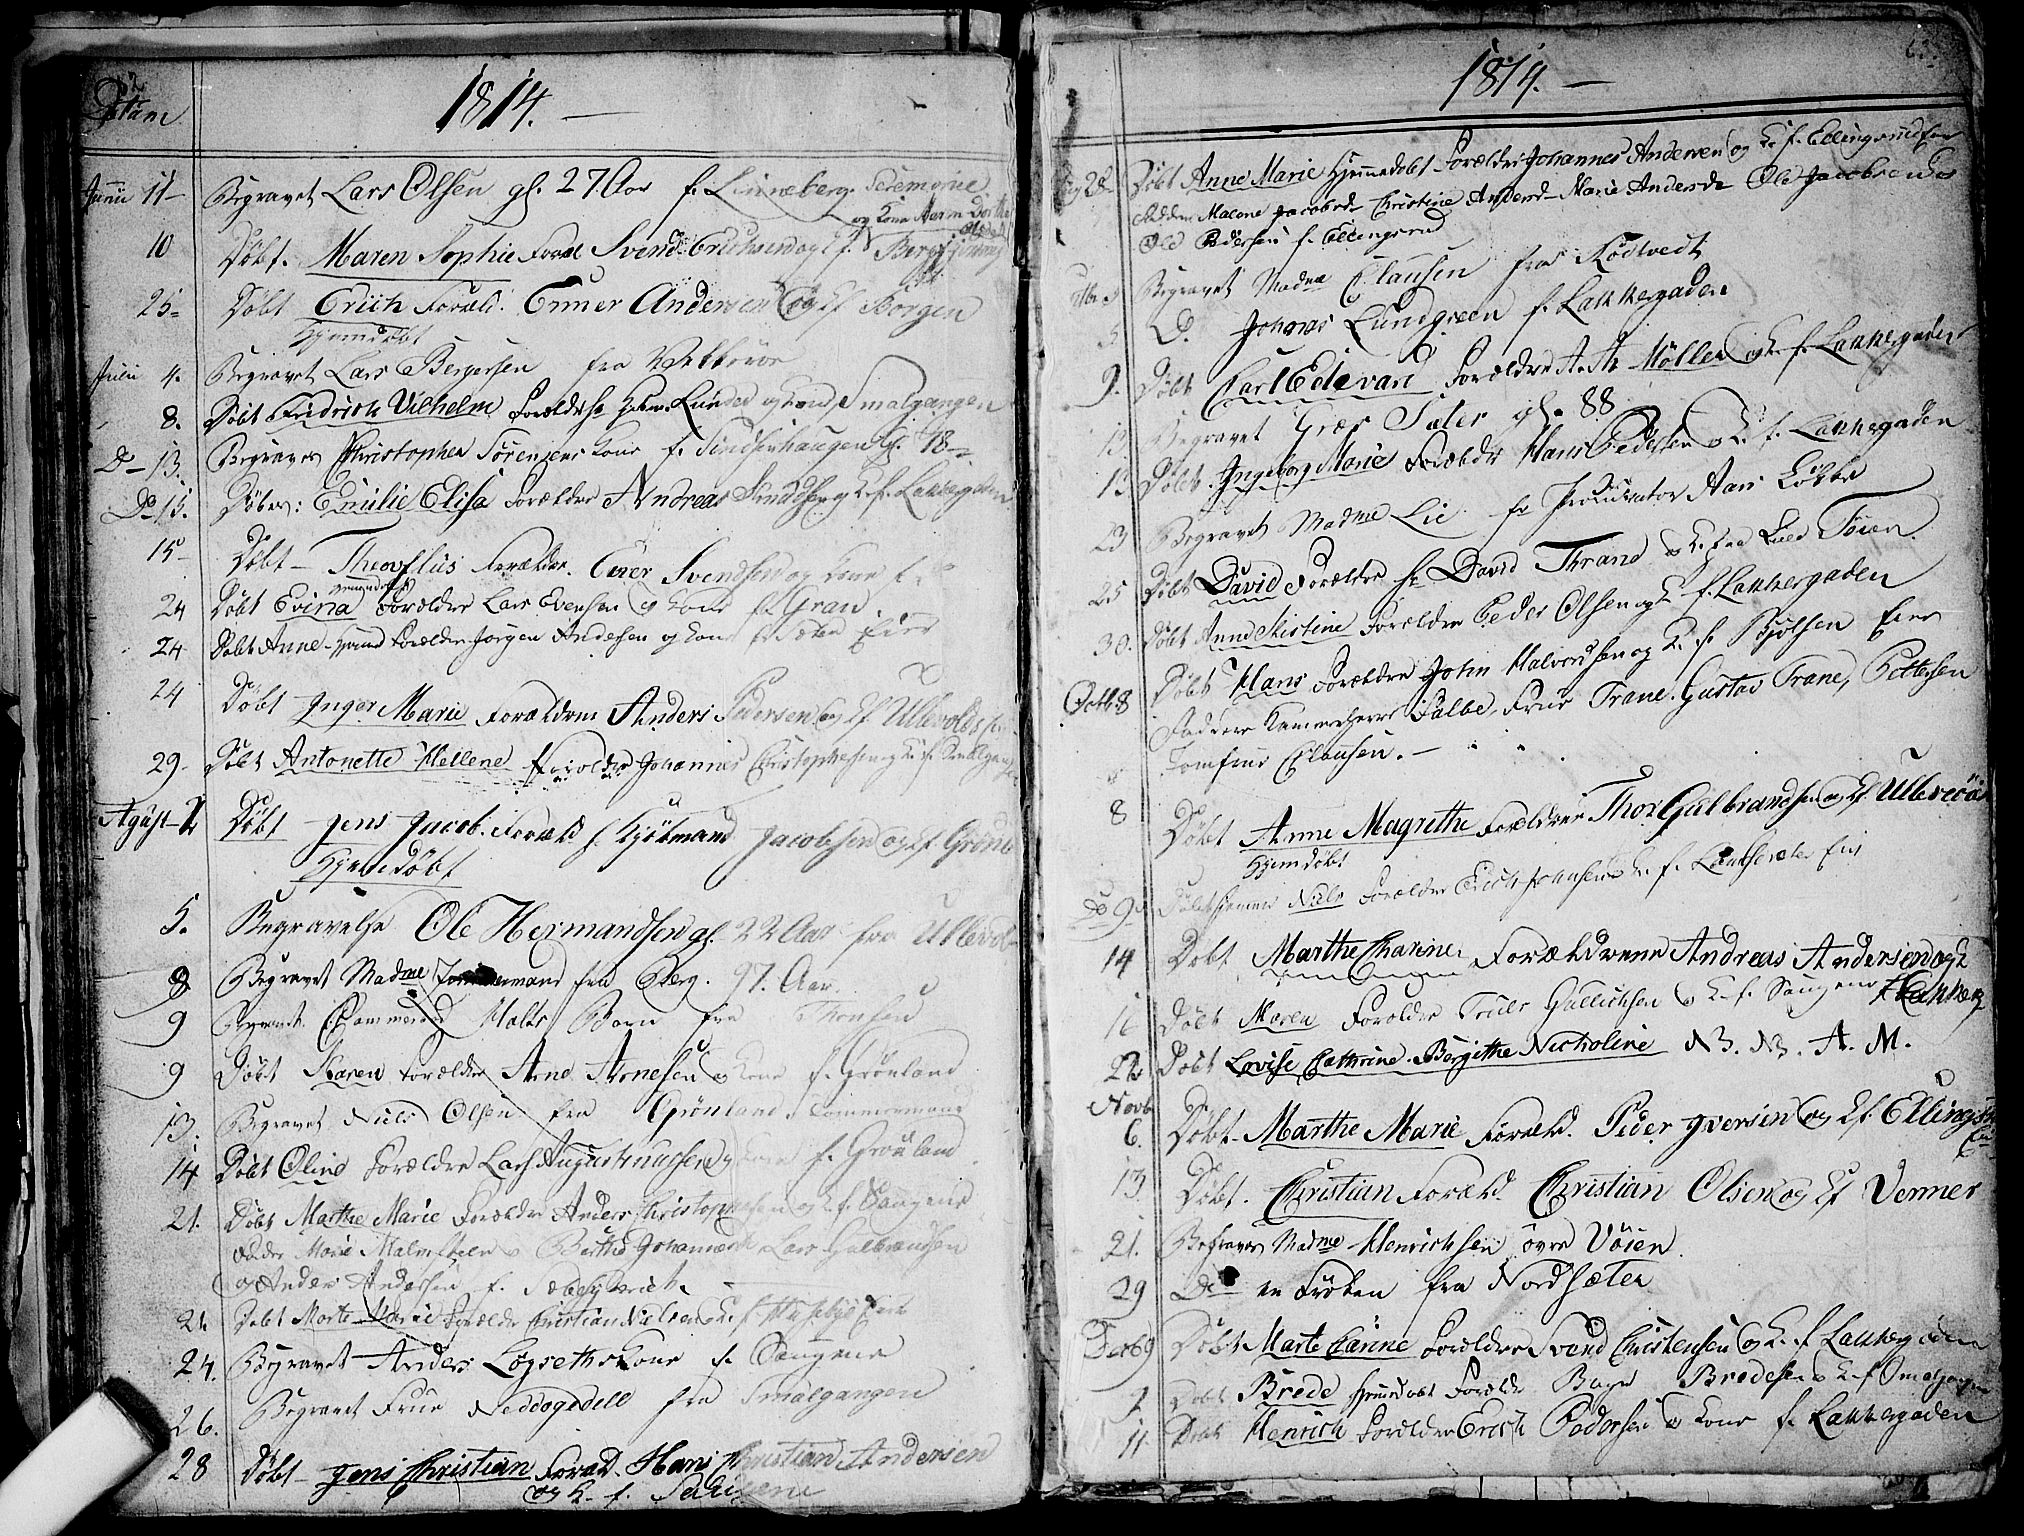 SAO, Aker prestekontor kirkebøker, G/L0001: Parish register (copy) no. 1, 1796-1826, p. 62-63